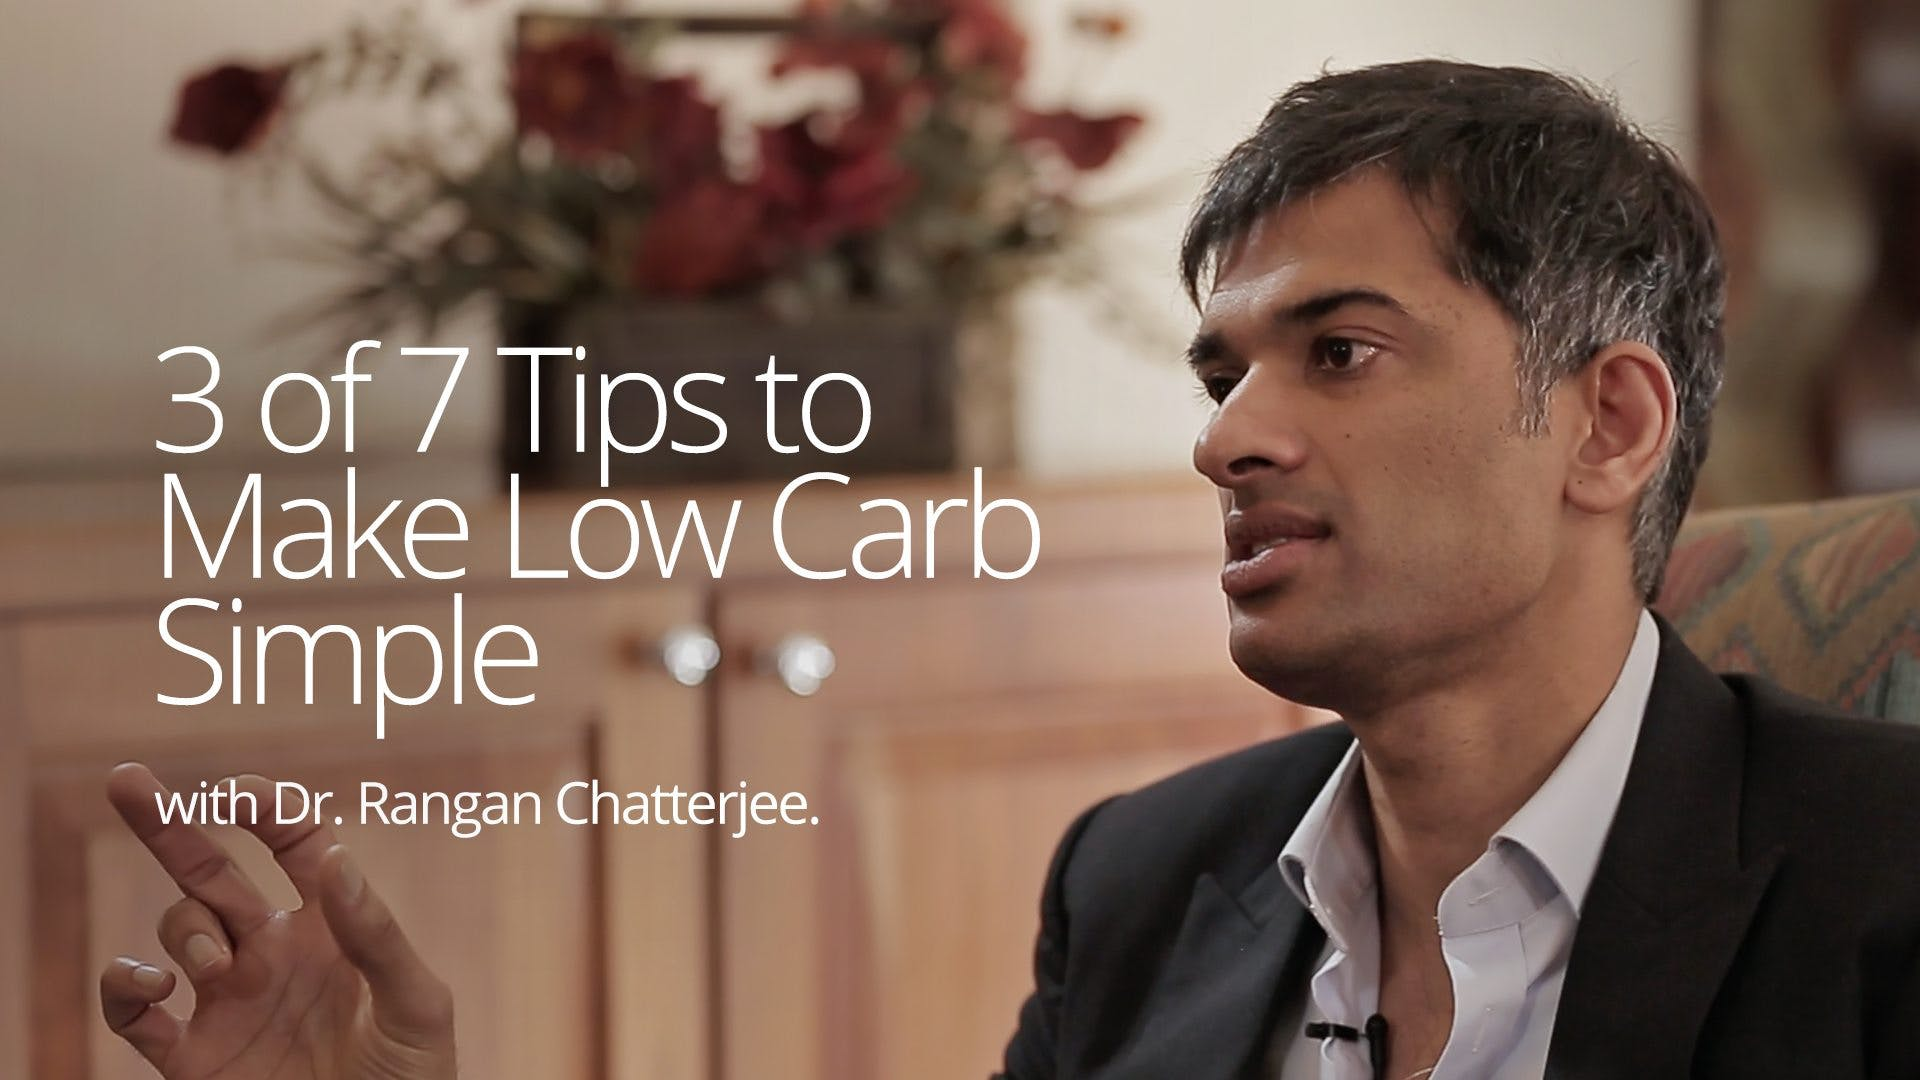 Tips to make low carb simple